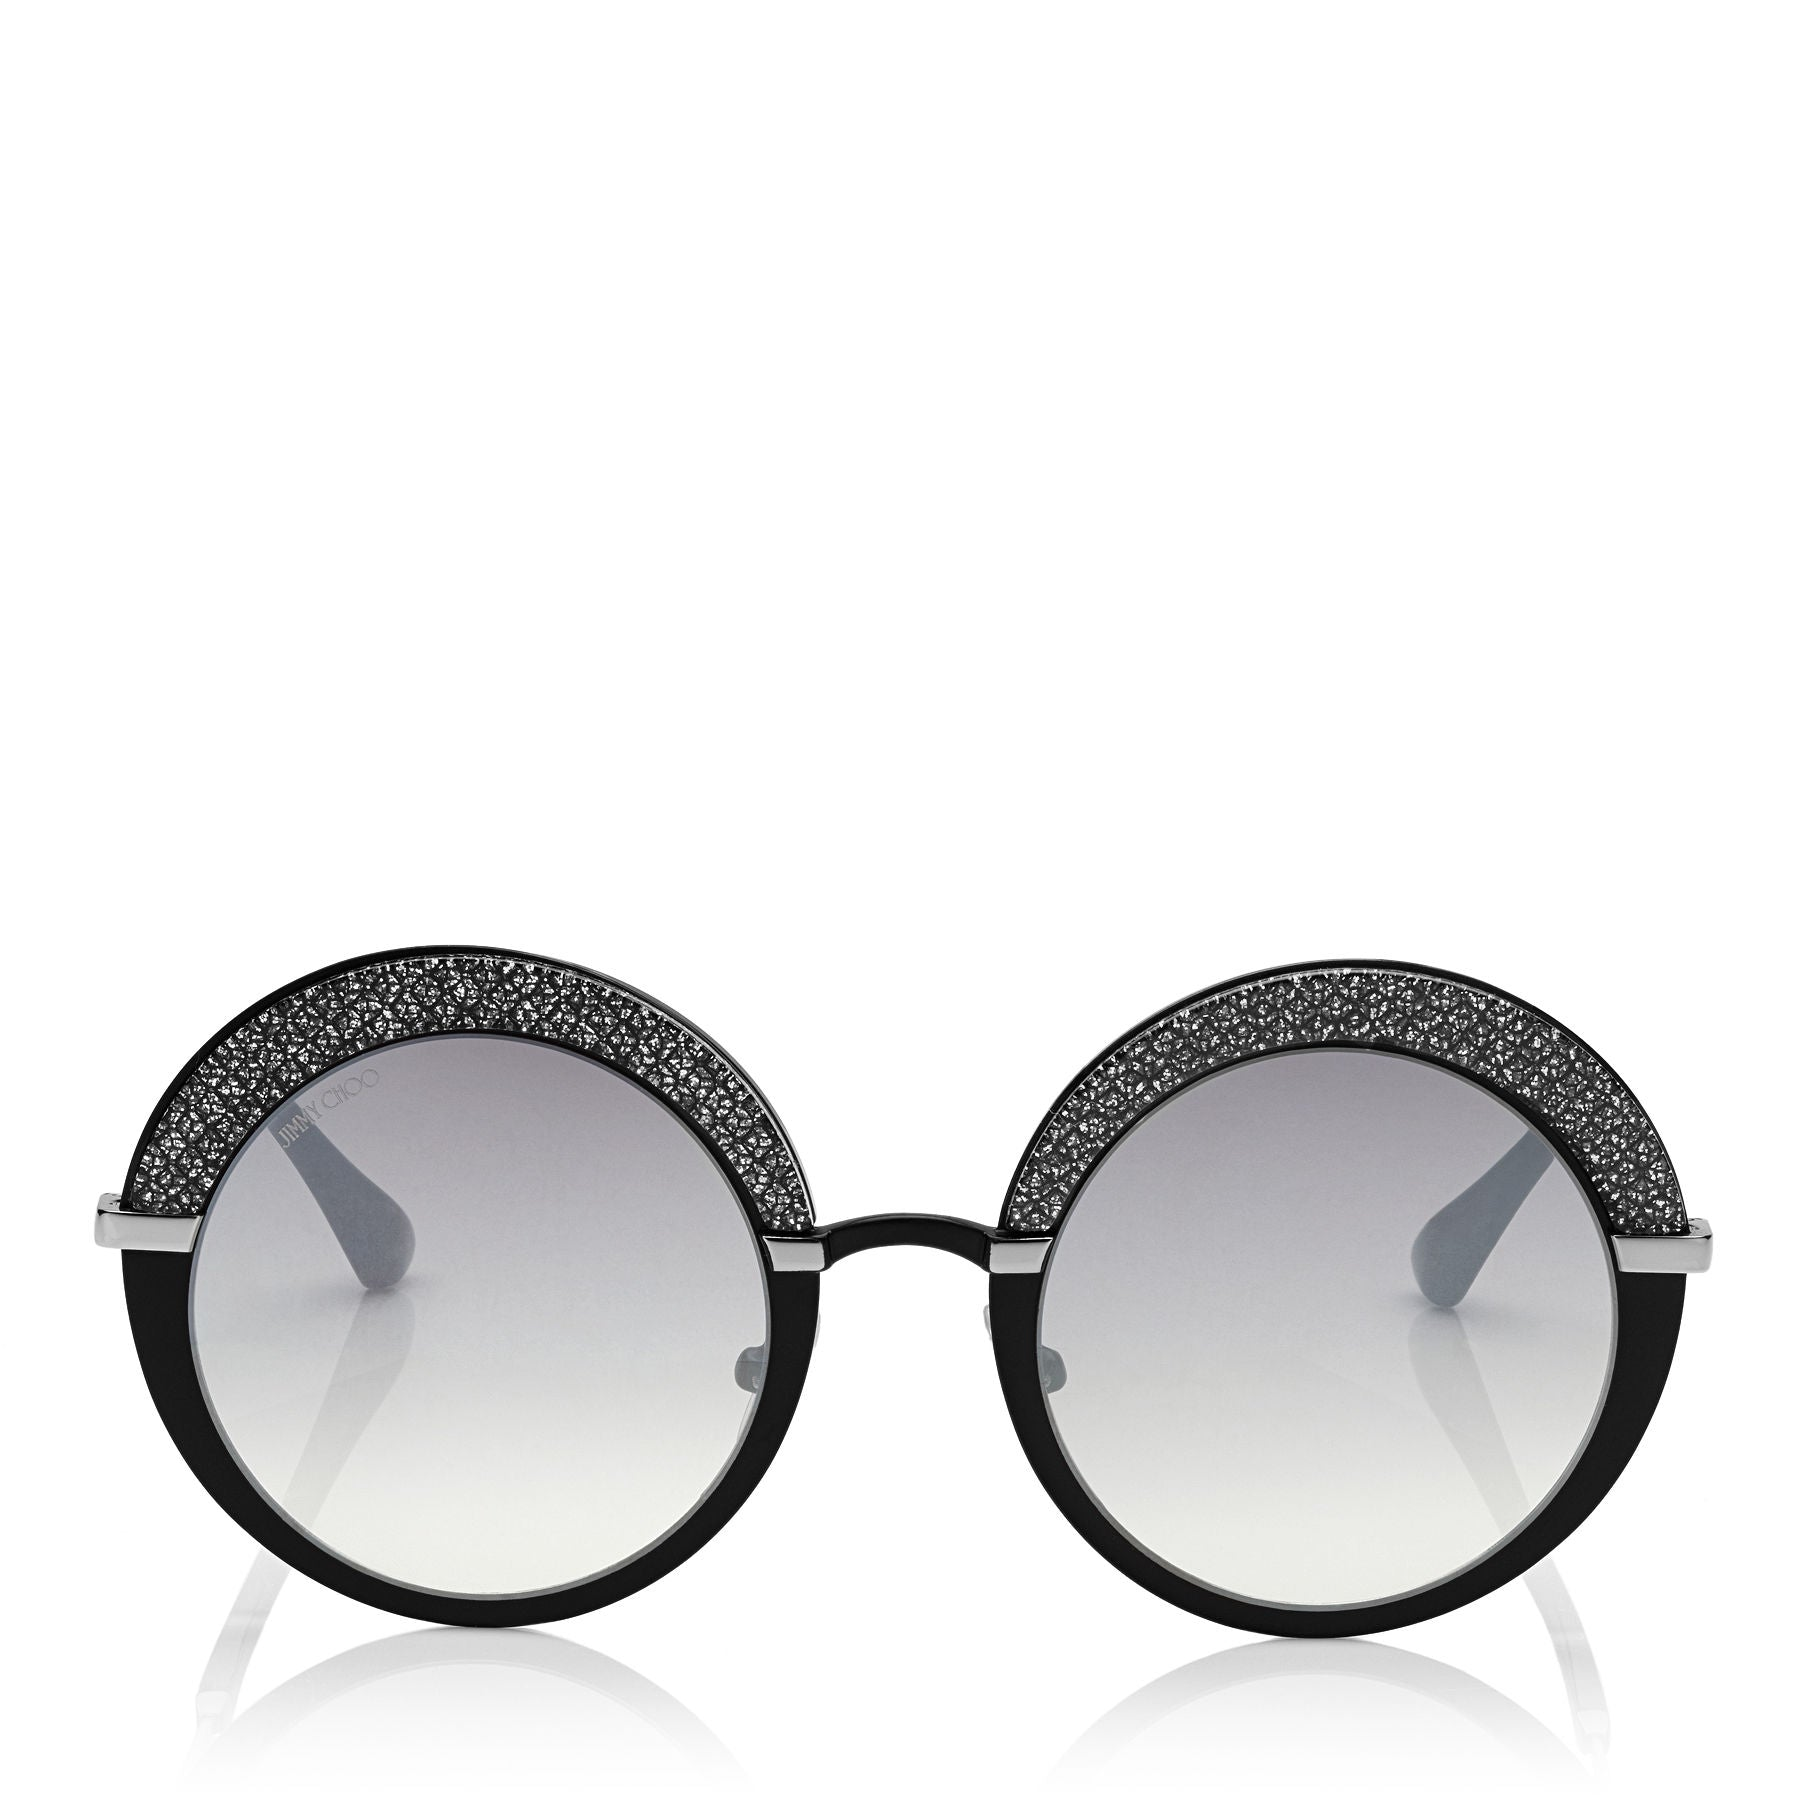 JIMMY CHOO Gotha Black Palladium and Glitter Round Framed Sunglasses ITEM NO. GOTHAS50EIXA